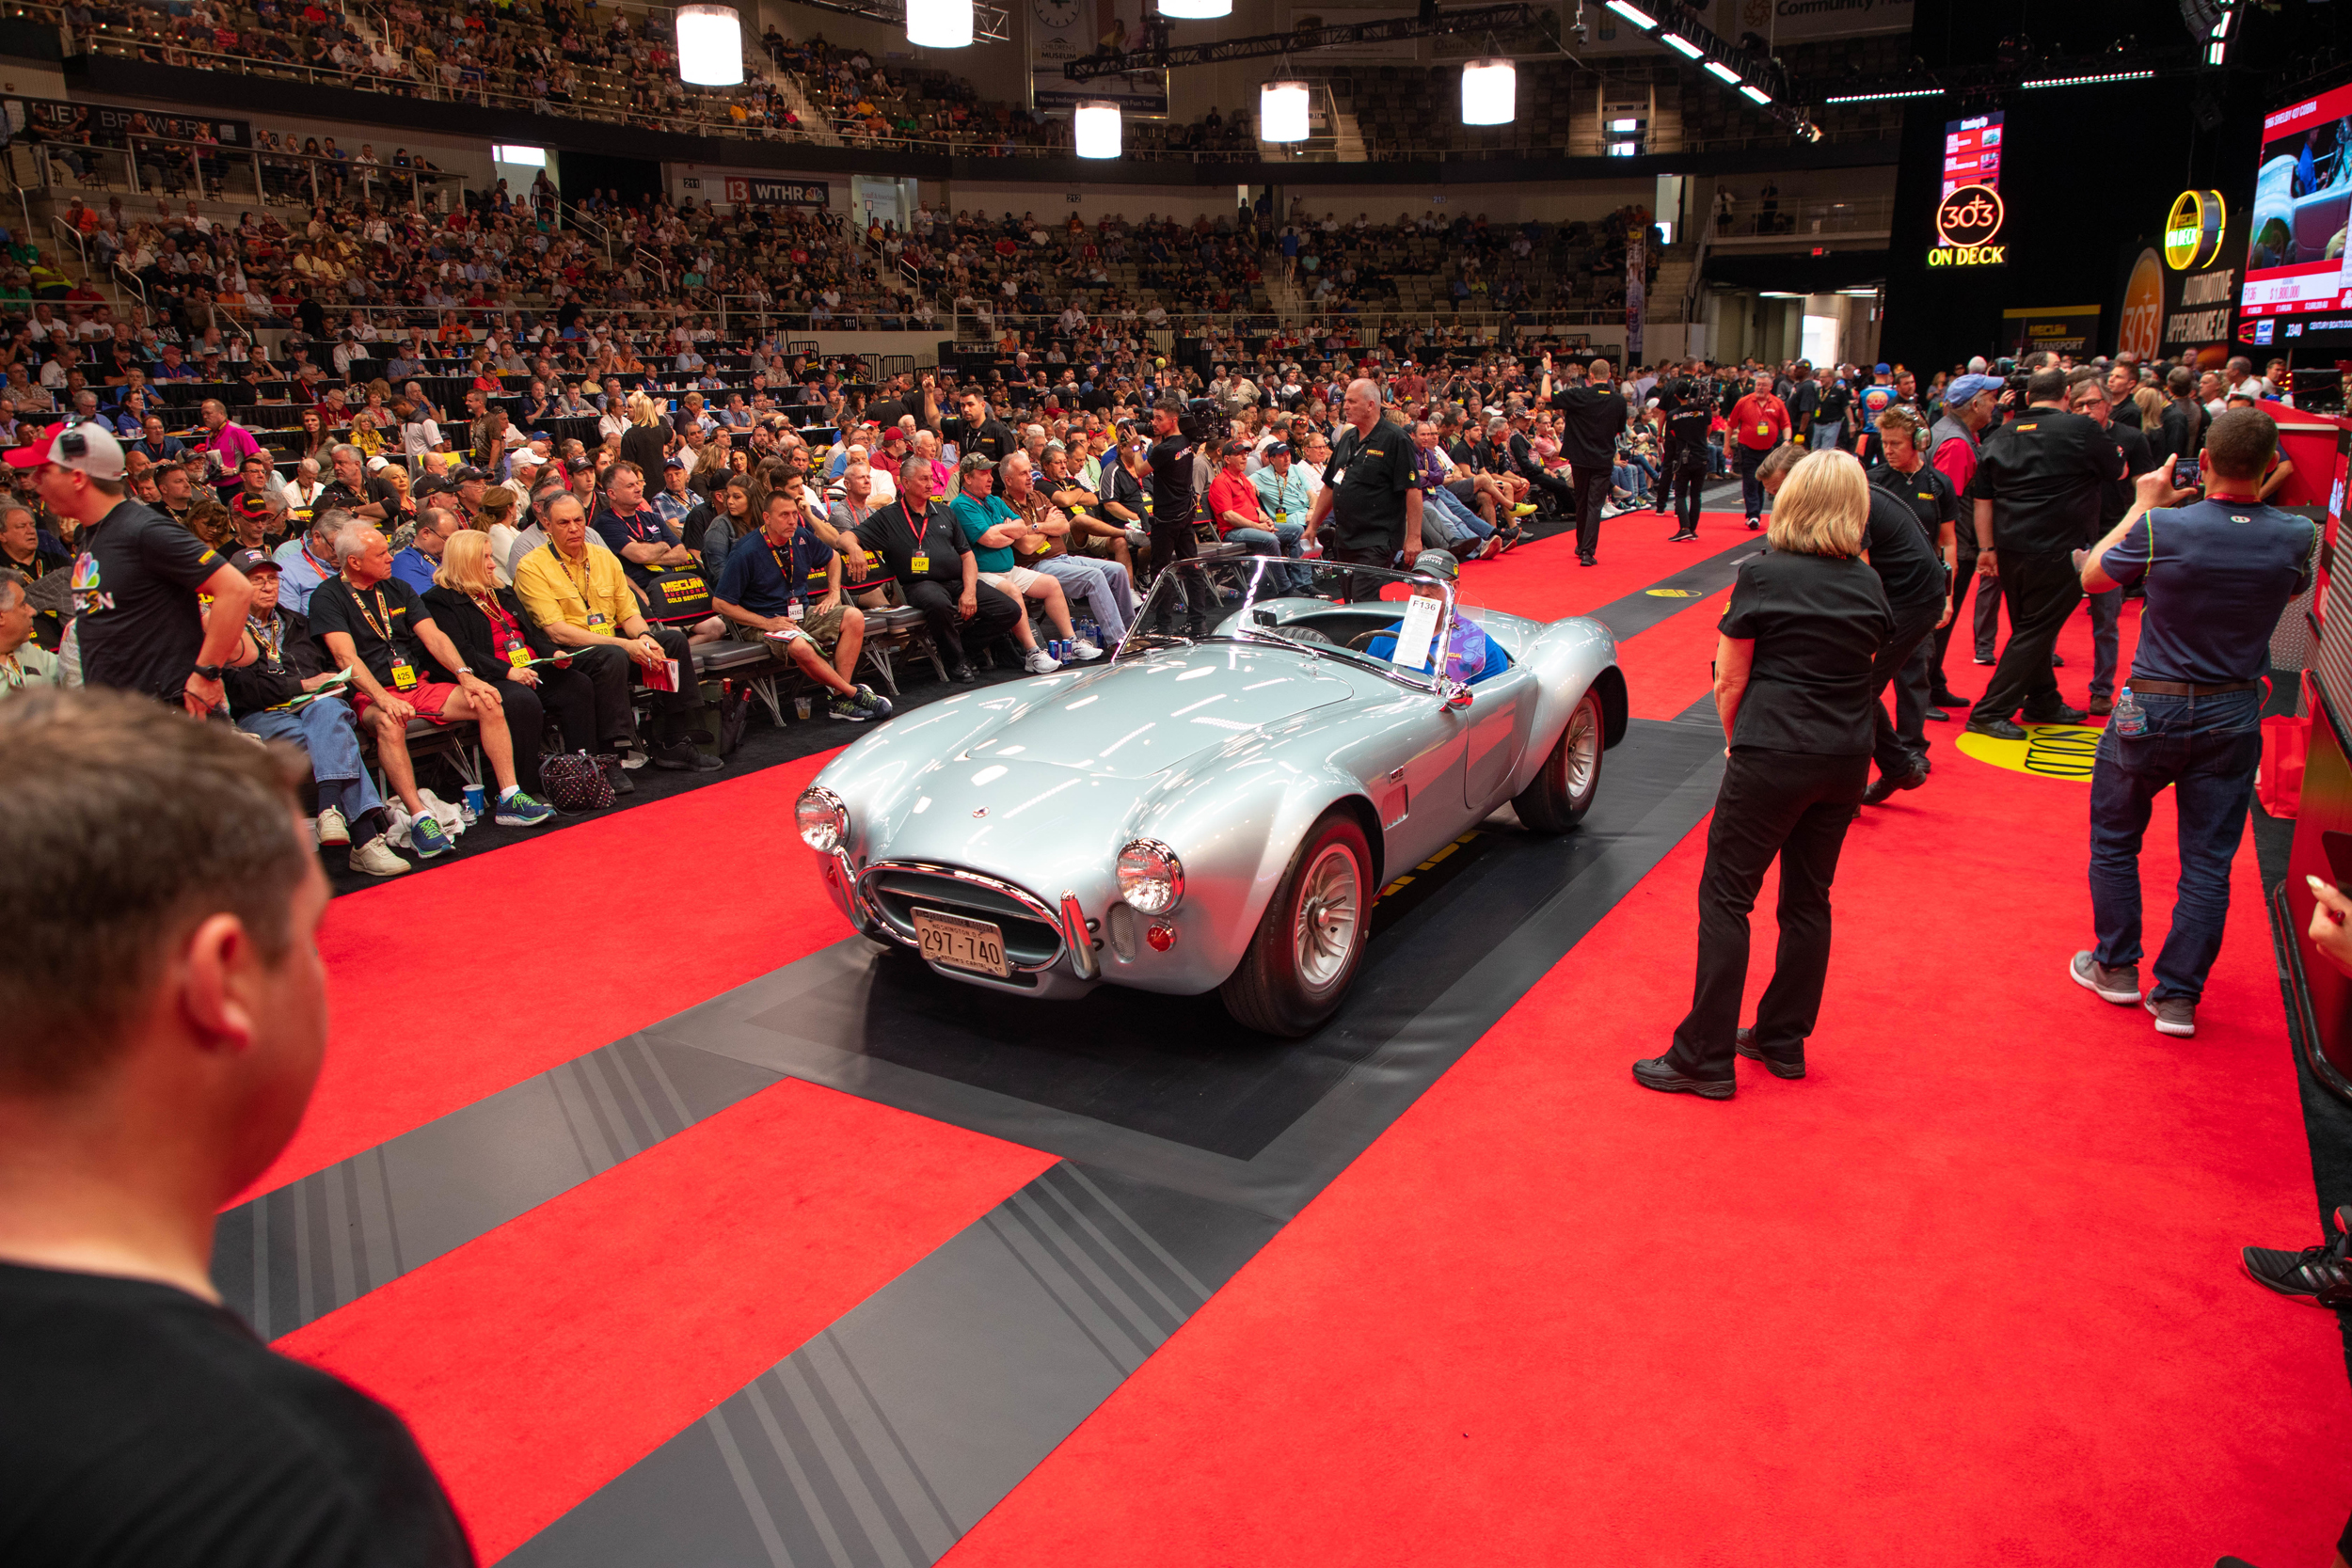 1966 Shelby 427 Cobra Roadster (Lot F136) Sells at $2,420,000 - Mecum Indy